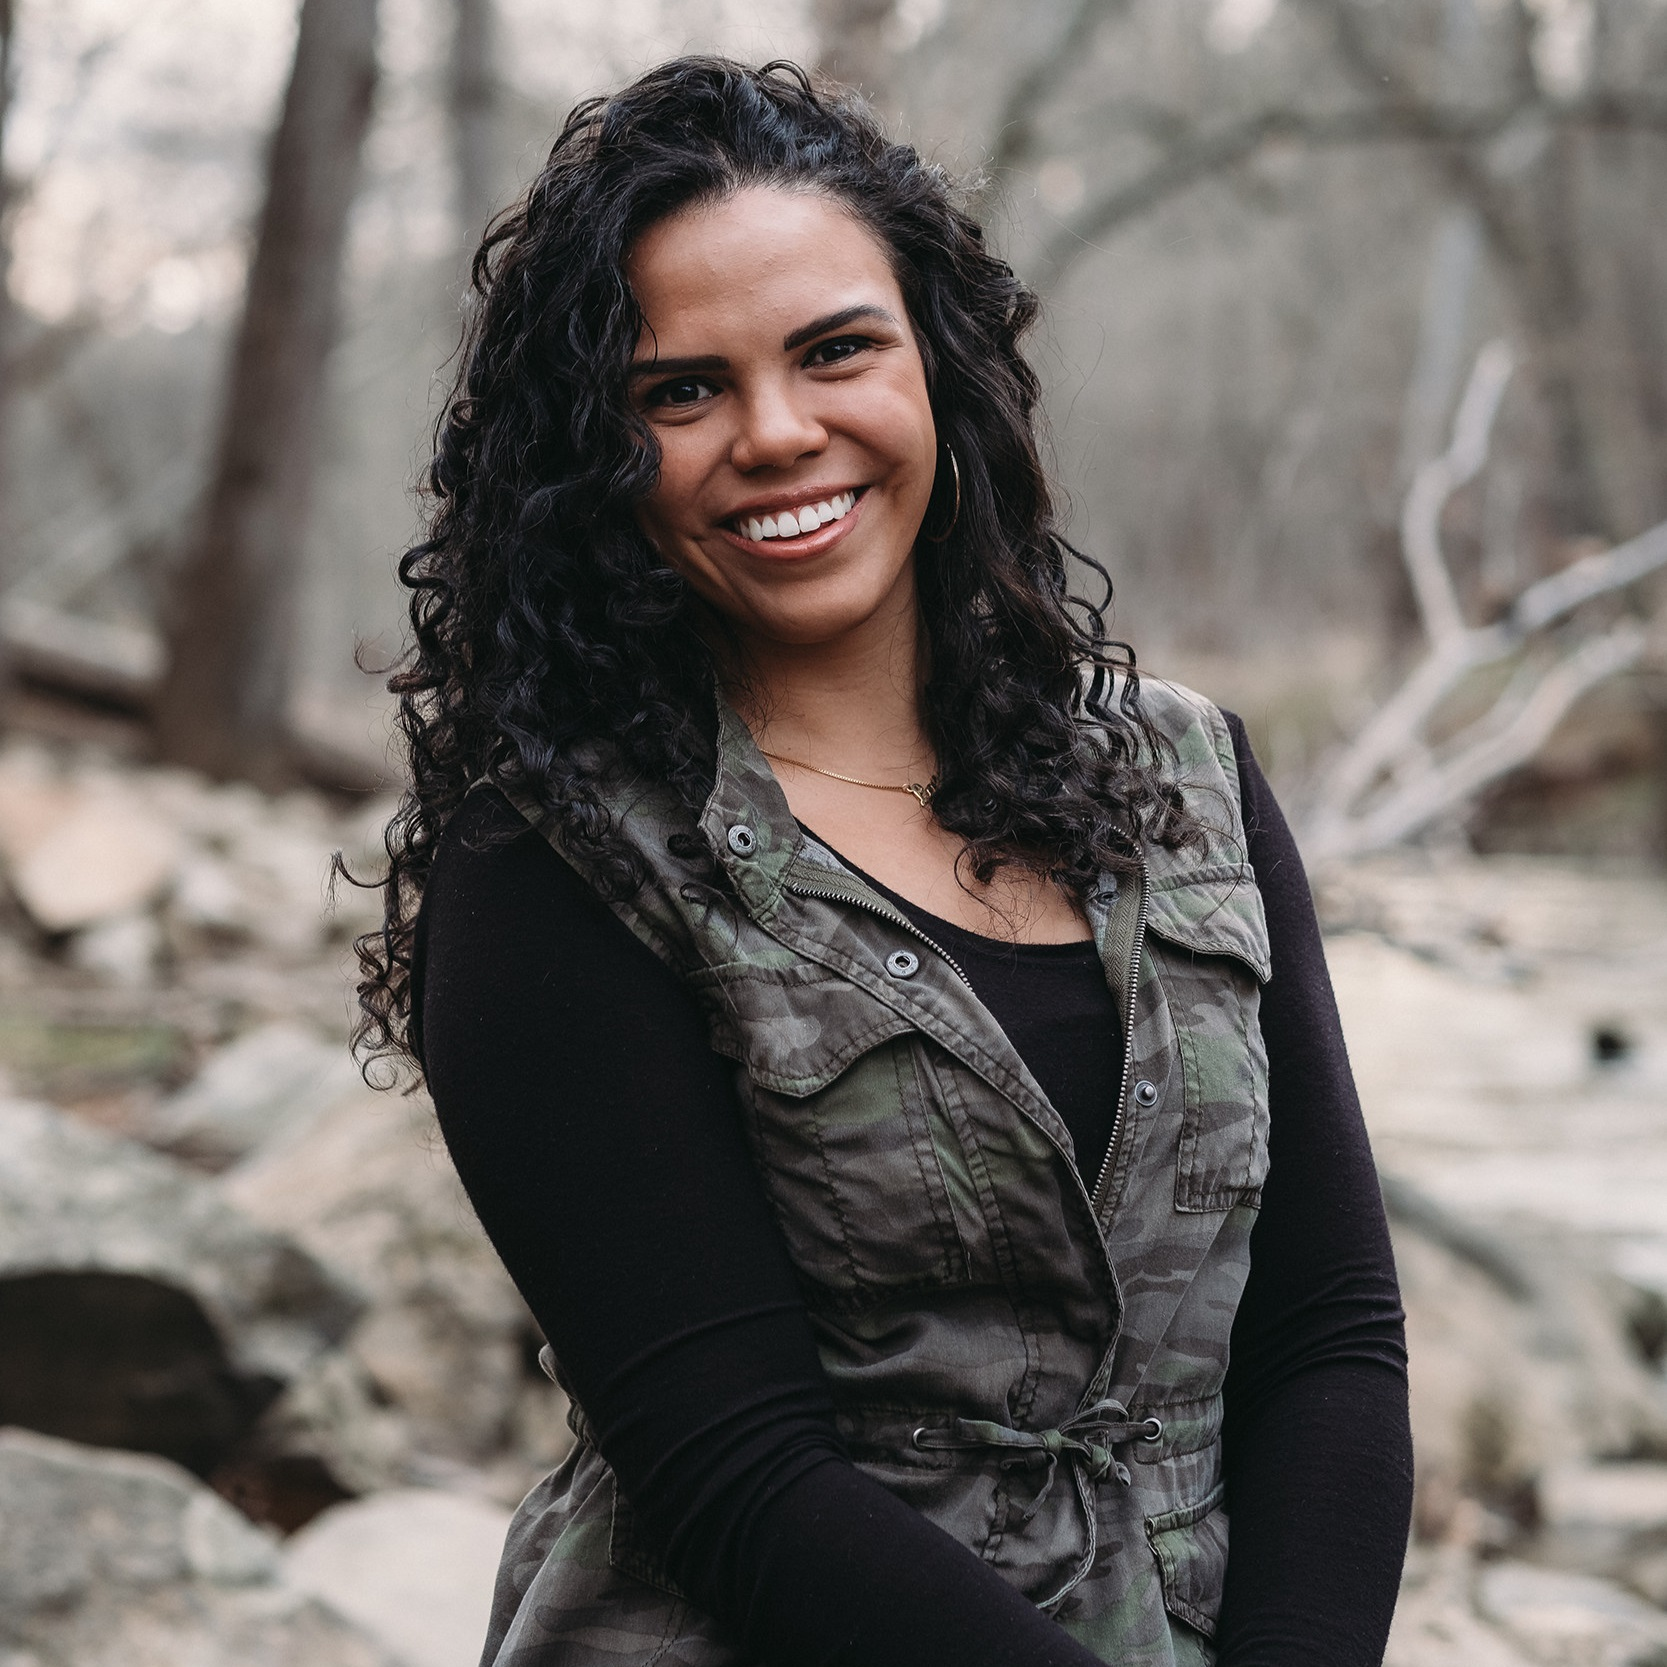 NADIA MERCADO    Nadia is an active climber, hiker and skydiver from North Carolina as well as a Cardiac nurse. She loves to challenge herself and others by conquering her fears in the outdoors.    Read more  →